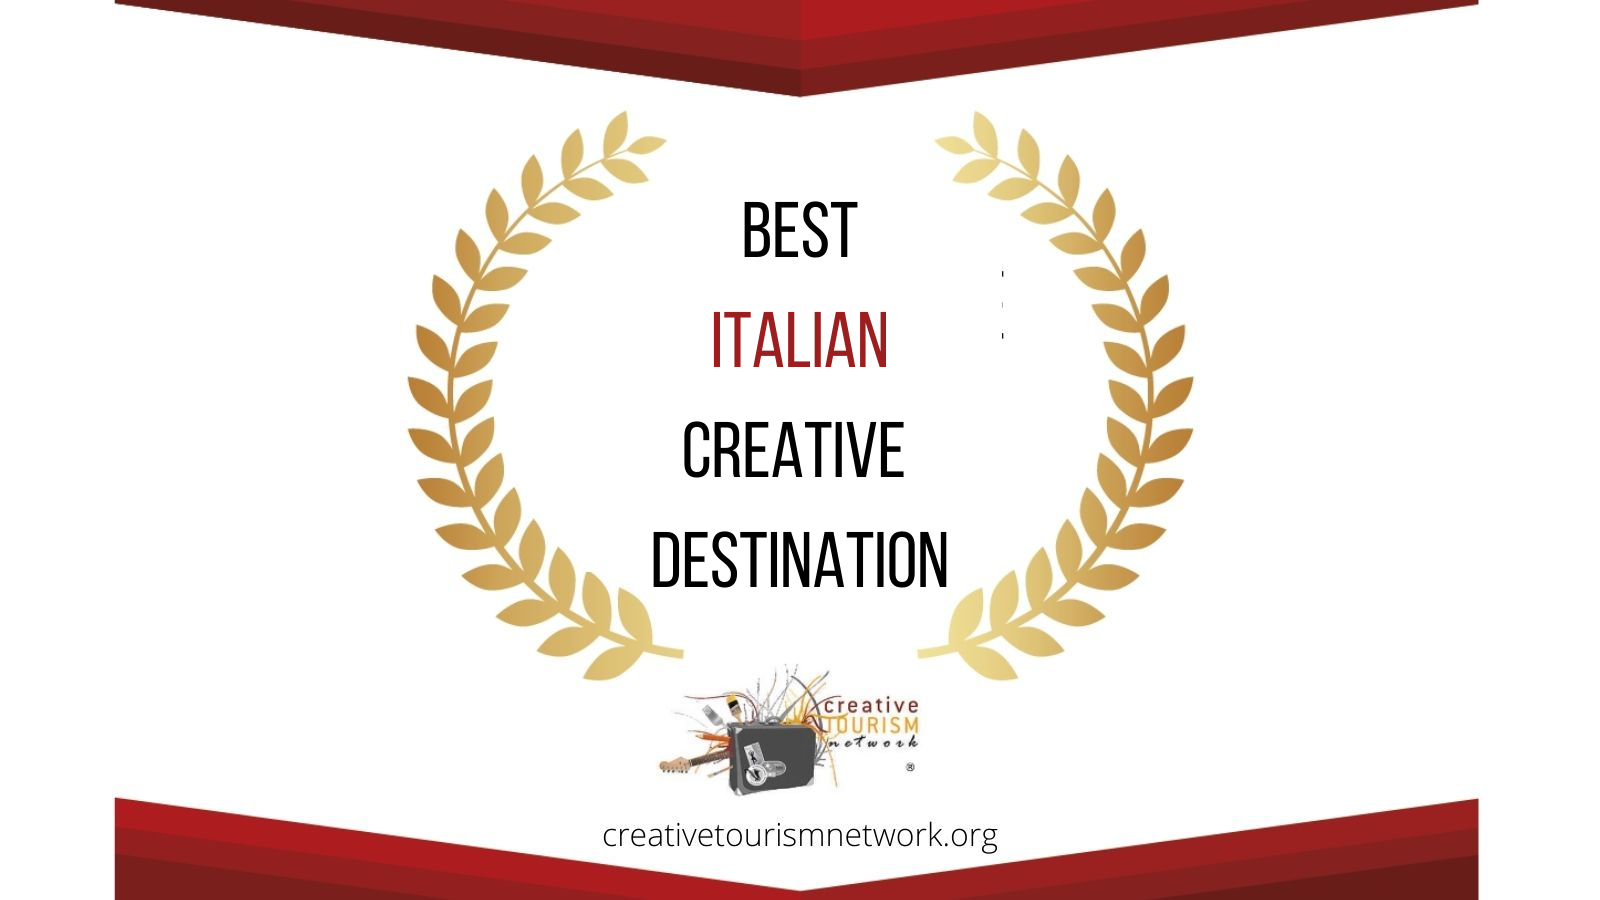 BEST ITALIAN CREATIVE DESTINATION